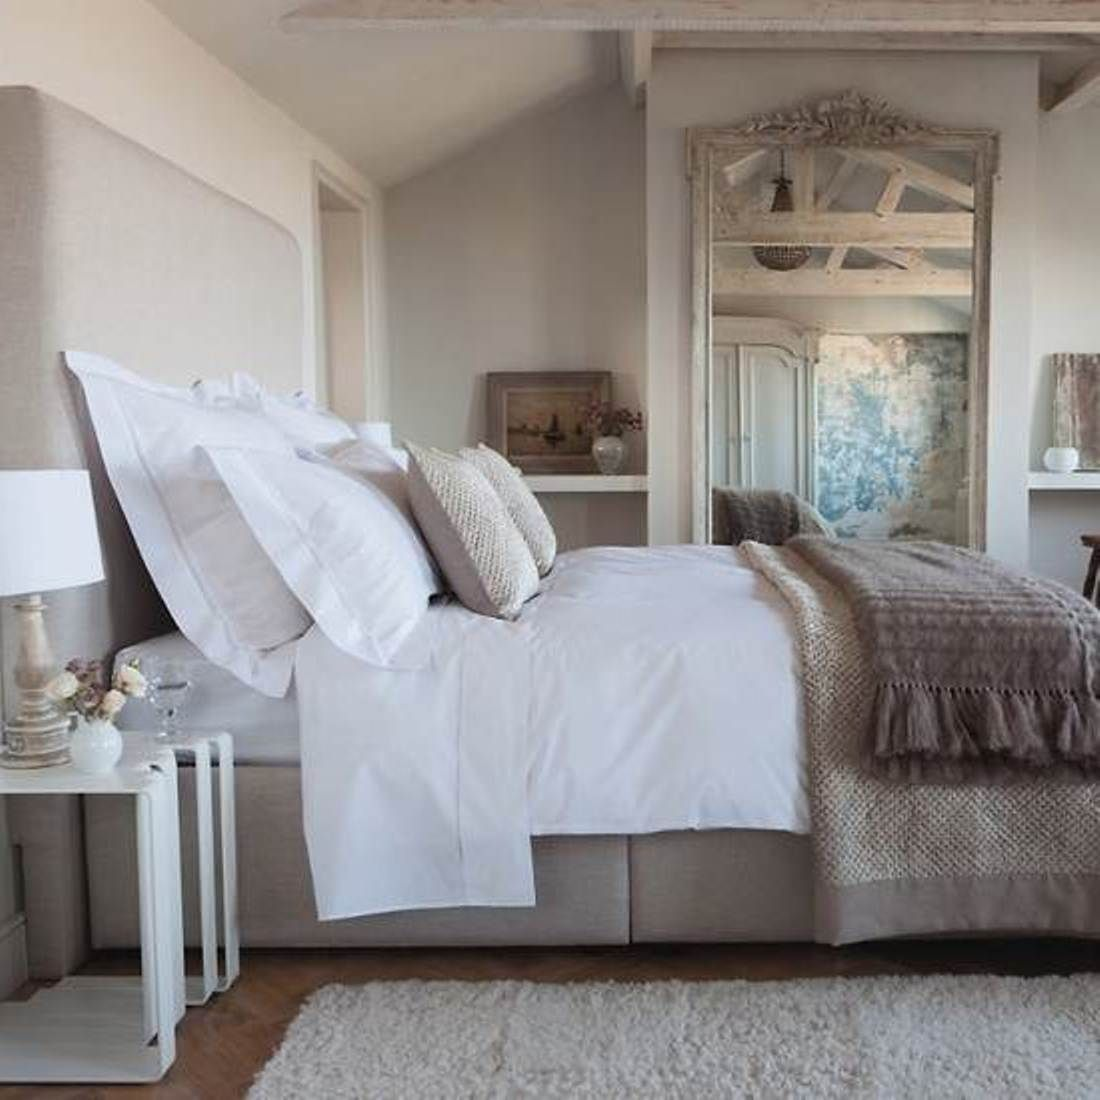 decorating master bedroom ideas on a budget - How To Decorate A Master Bedroom On A Budget